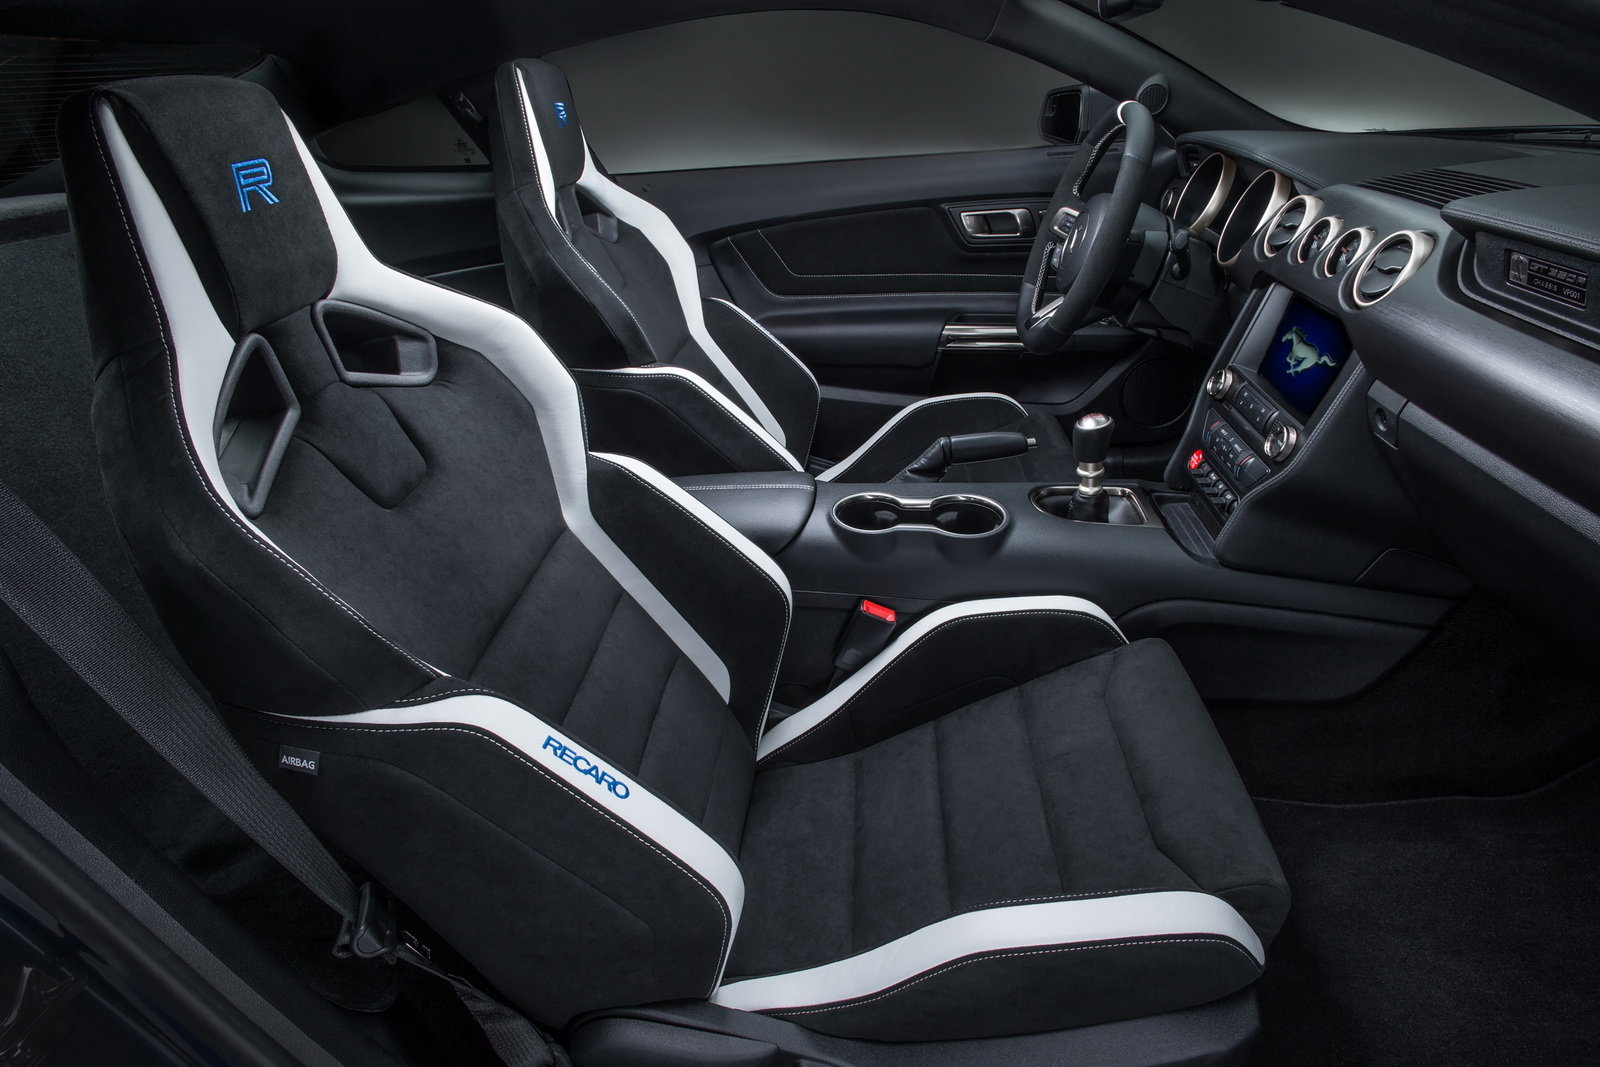 2016 Ford Mustang Shelby Gt350r Front Interior (Photo 34 of 47)